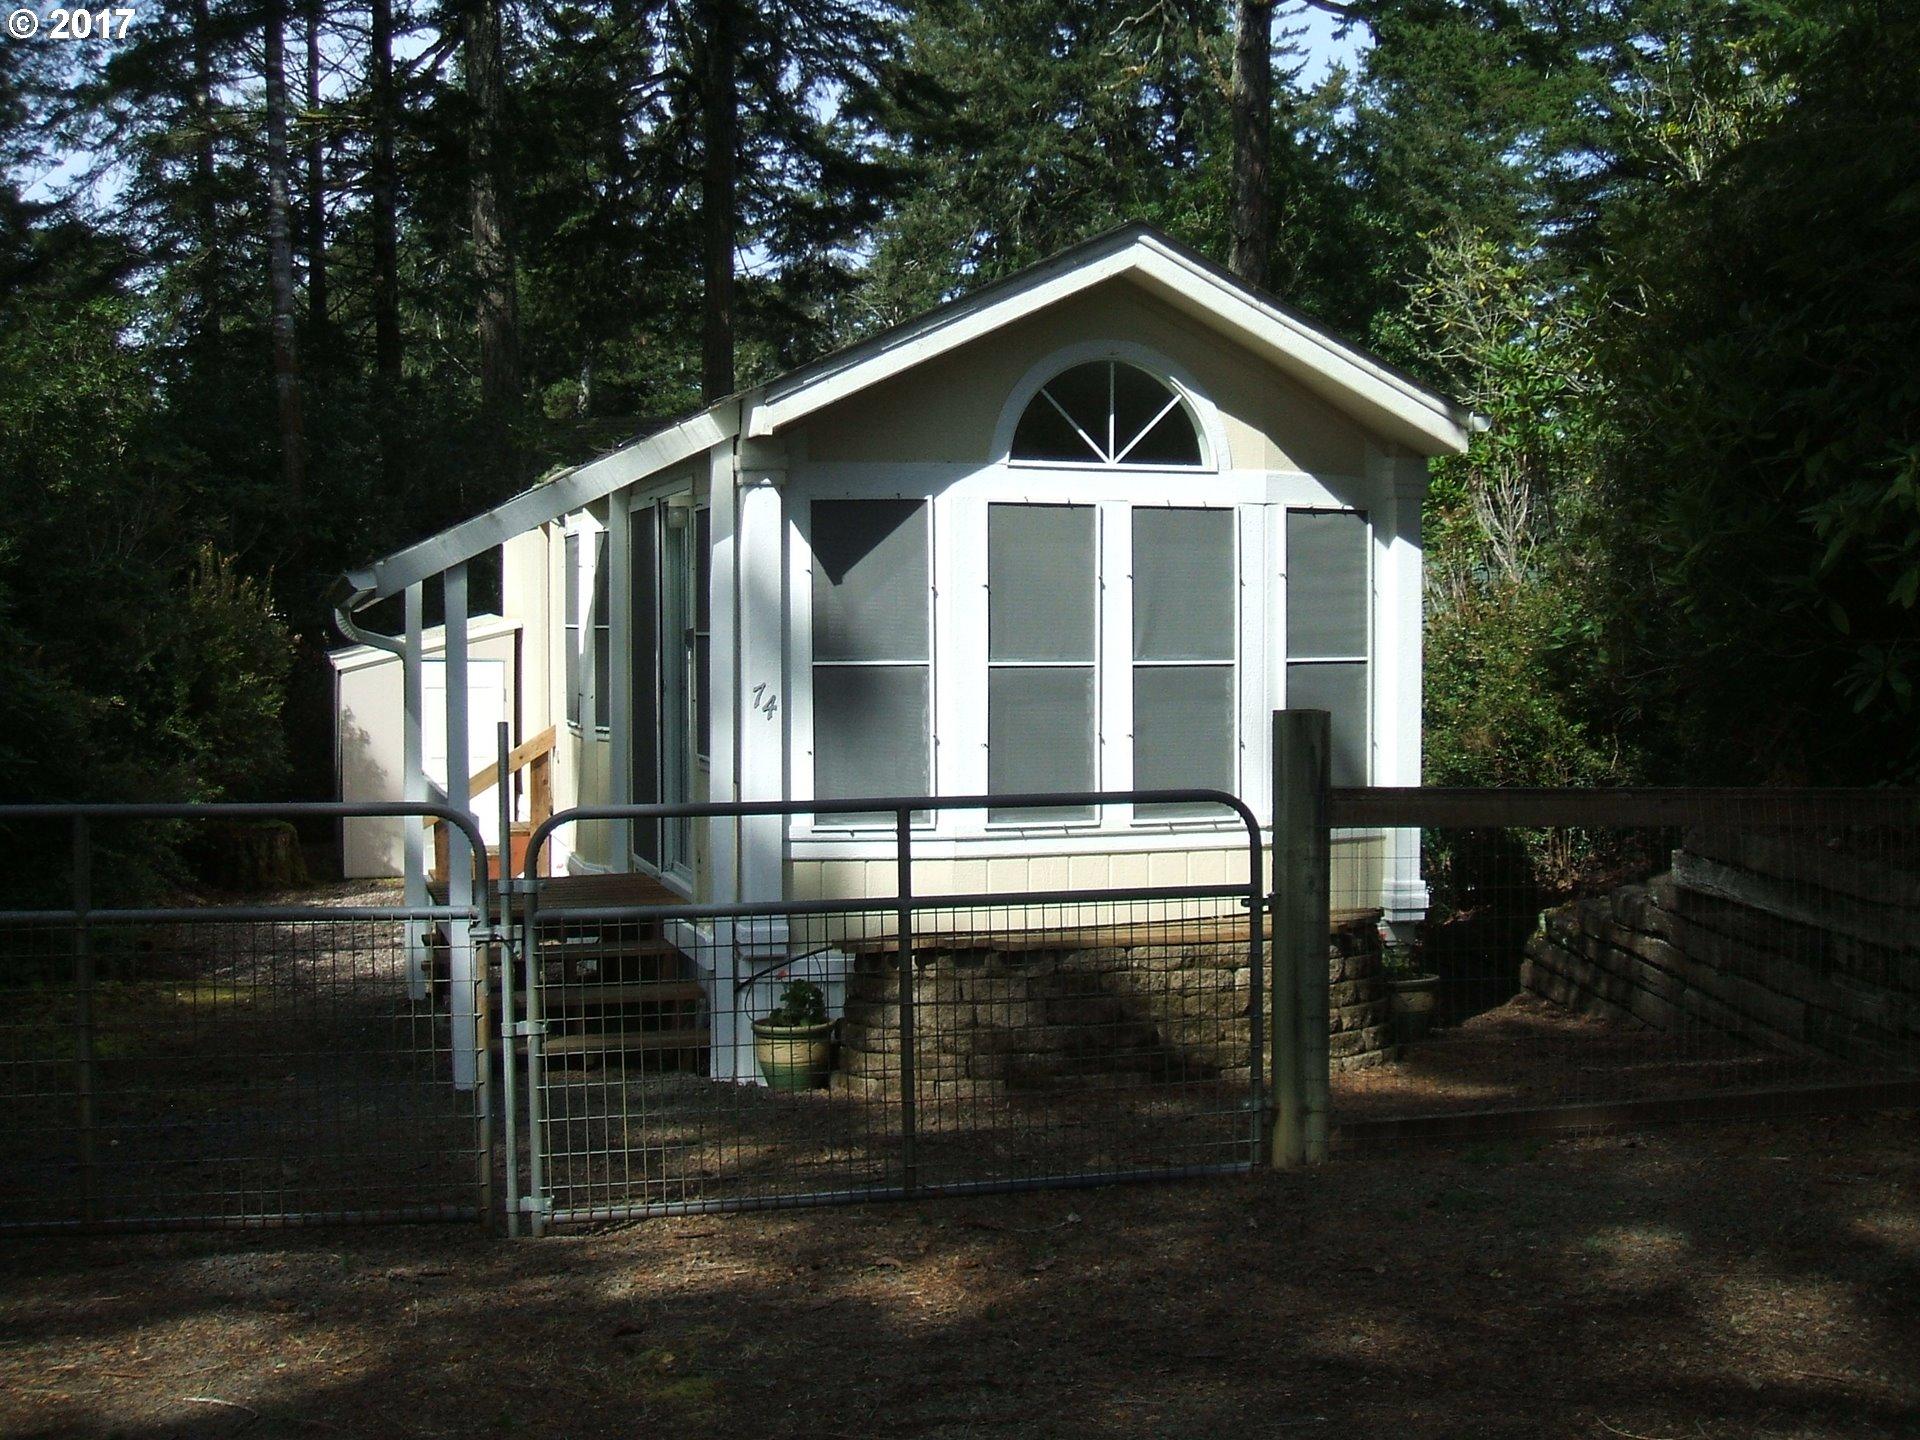 74 OUTER DR, Florence, OR 97439